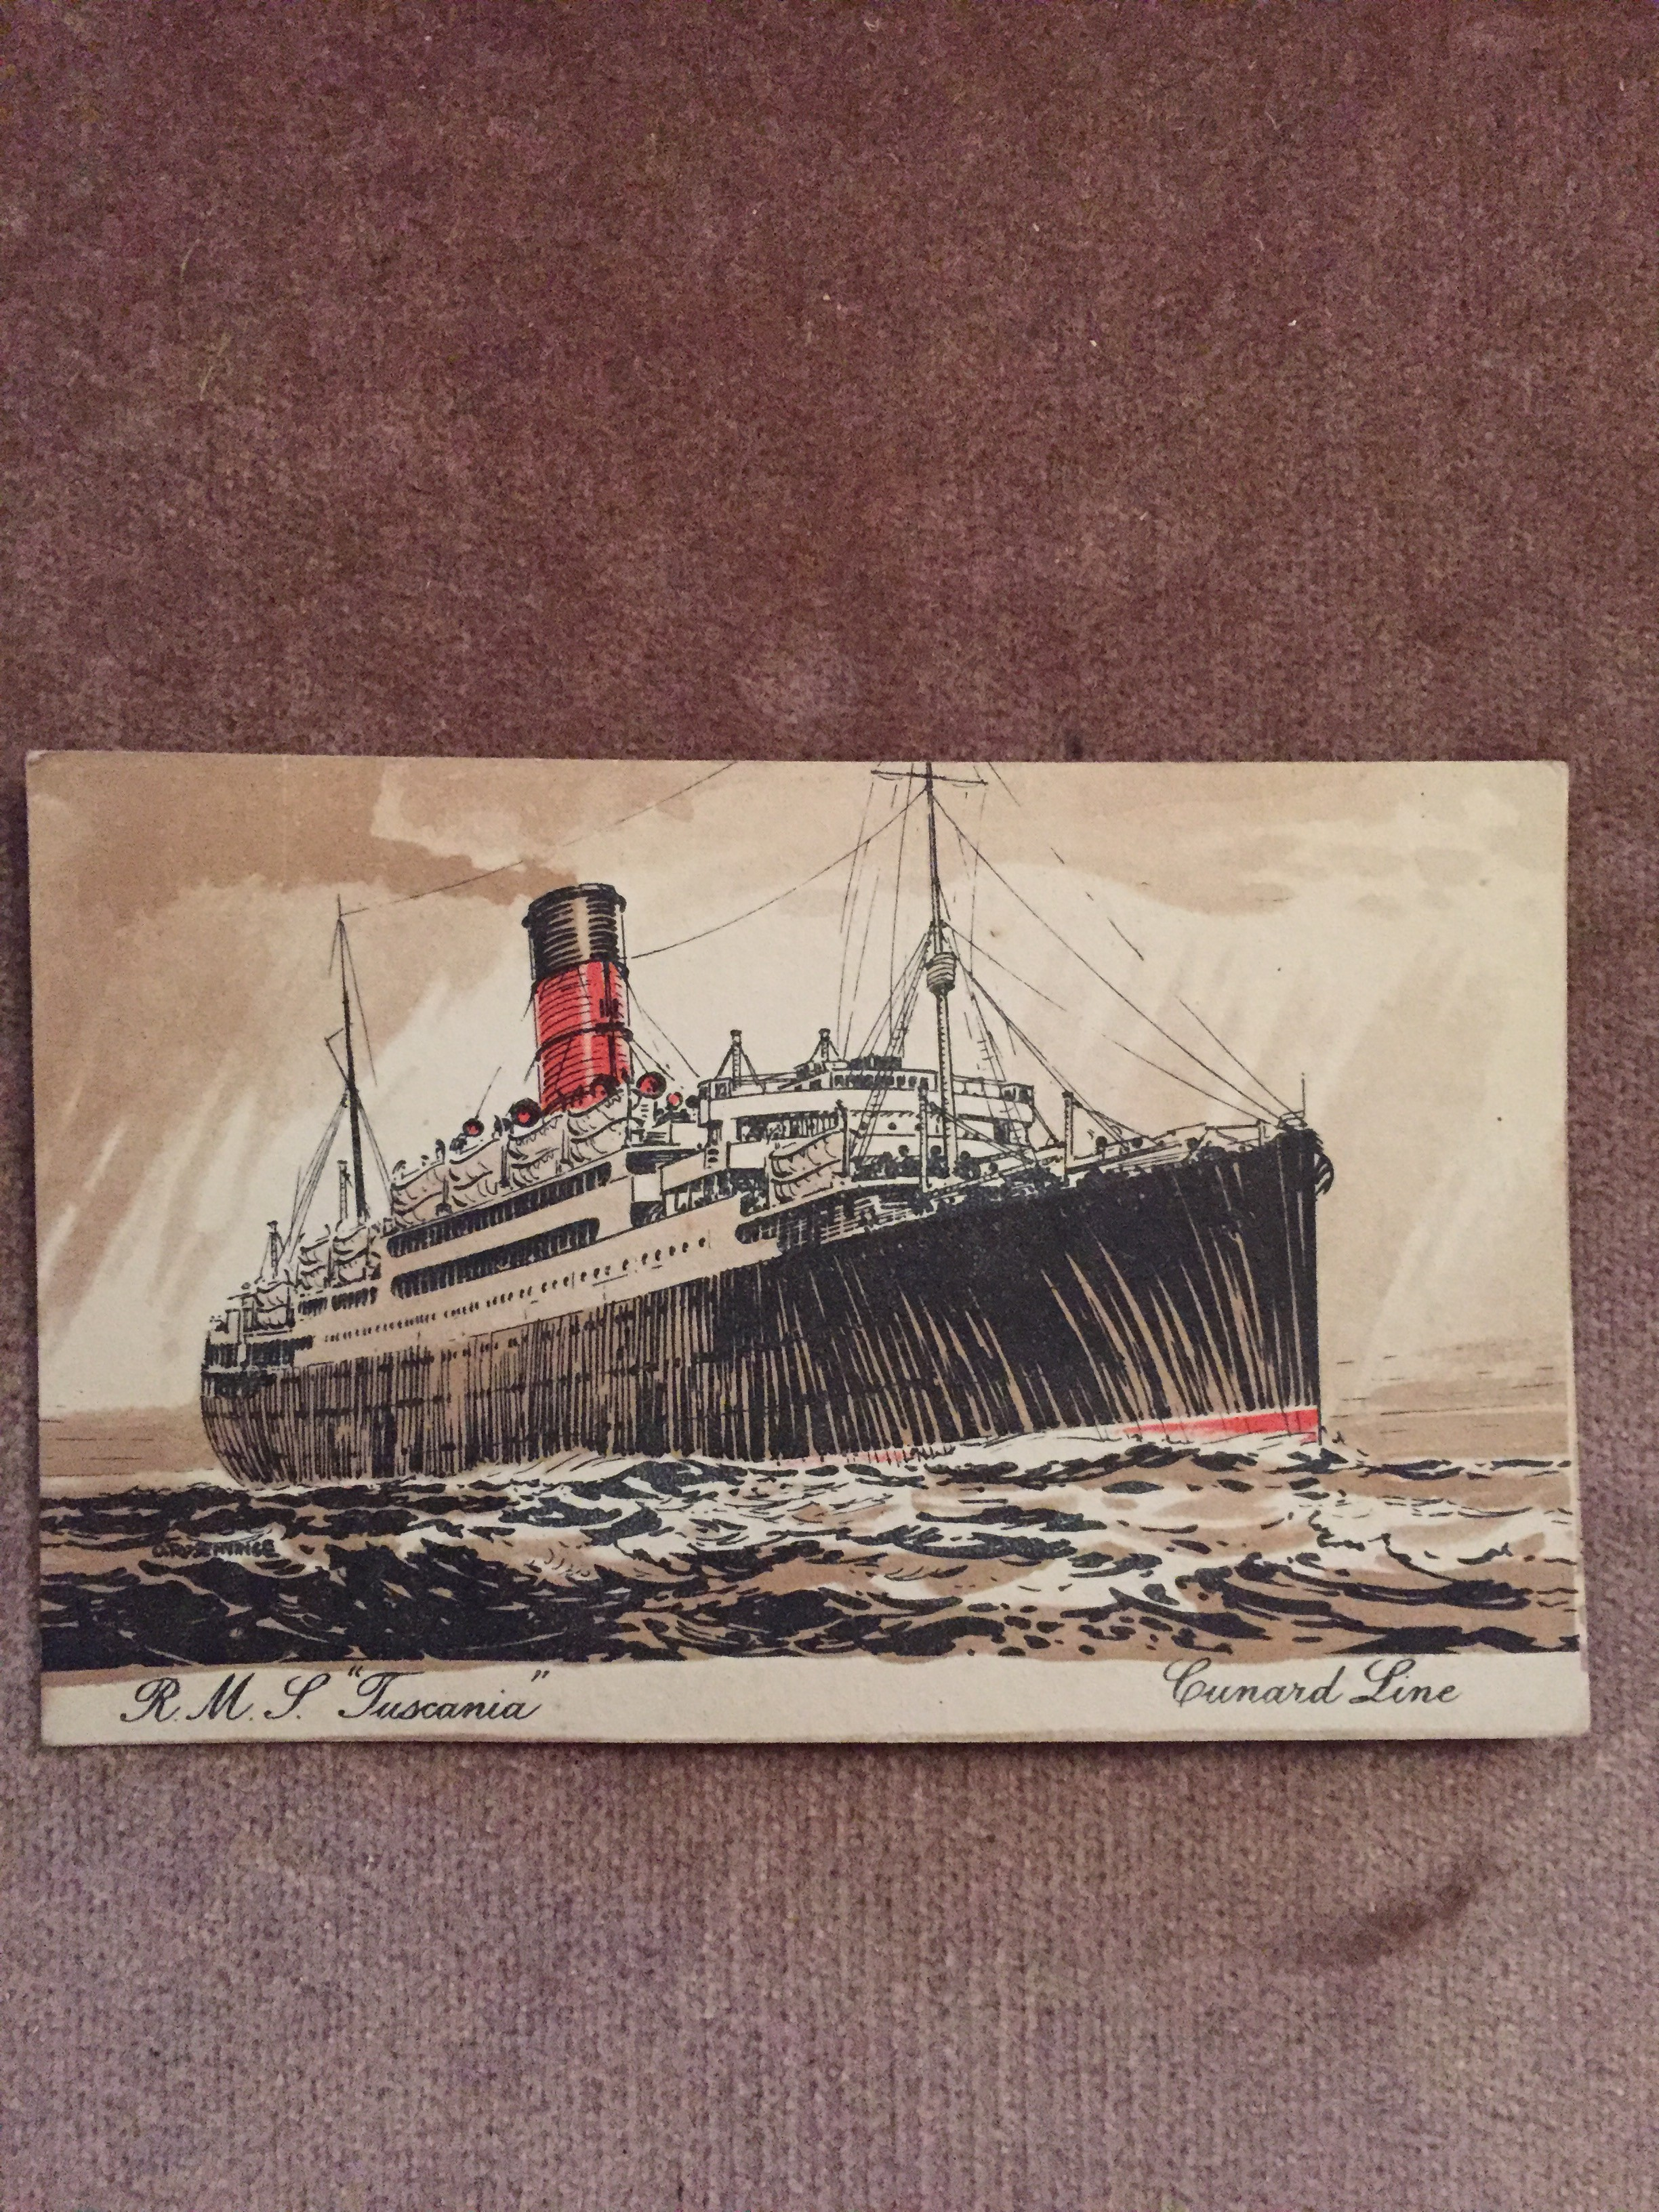 ORIGINAL COLOUR POSTCARD OF THE CUNARD LINE VESSEL THE RMS TUSCANIA